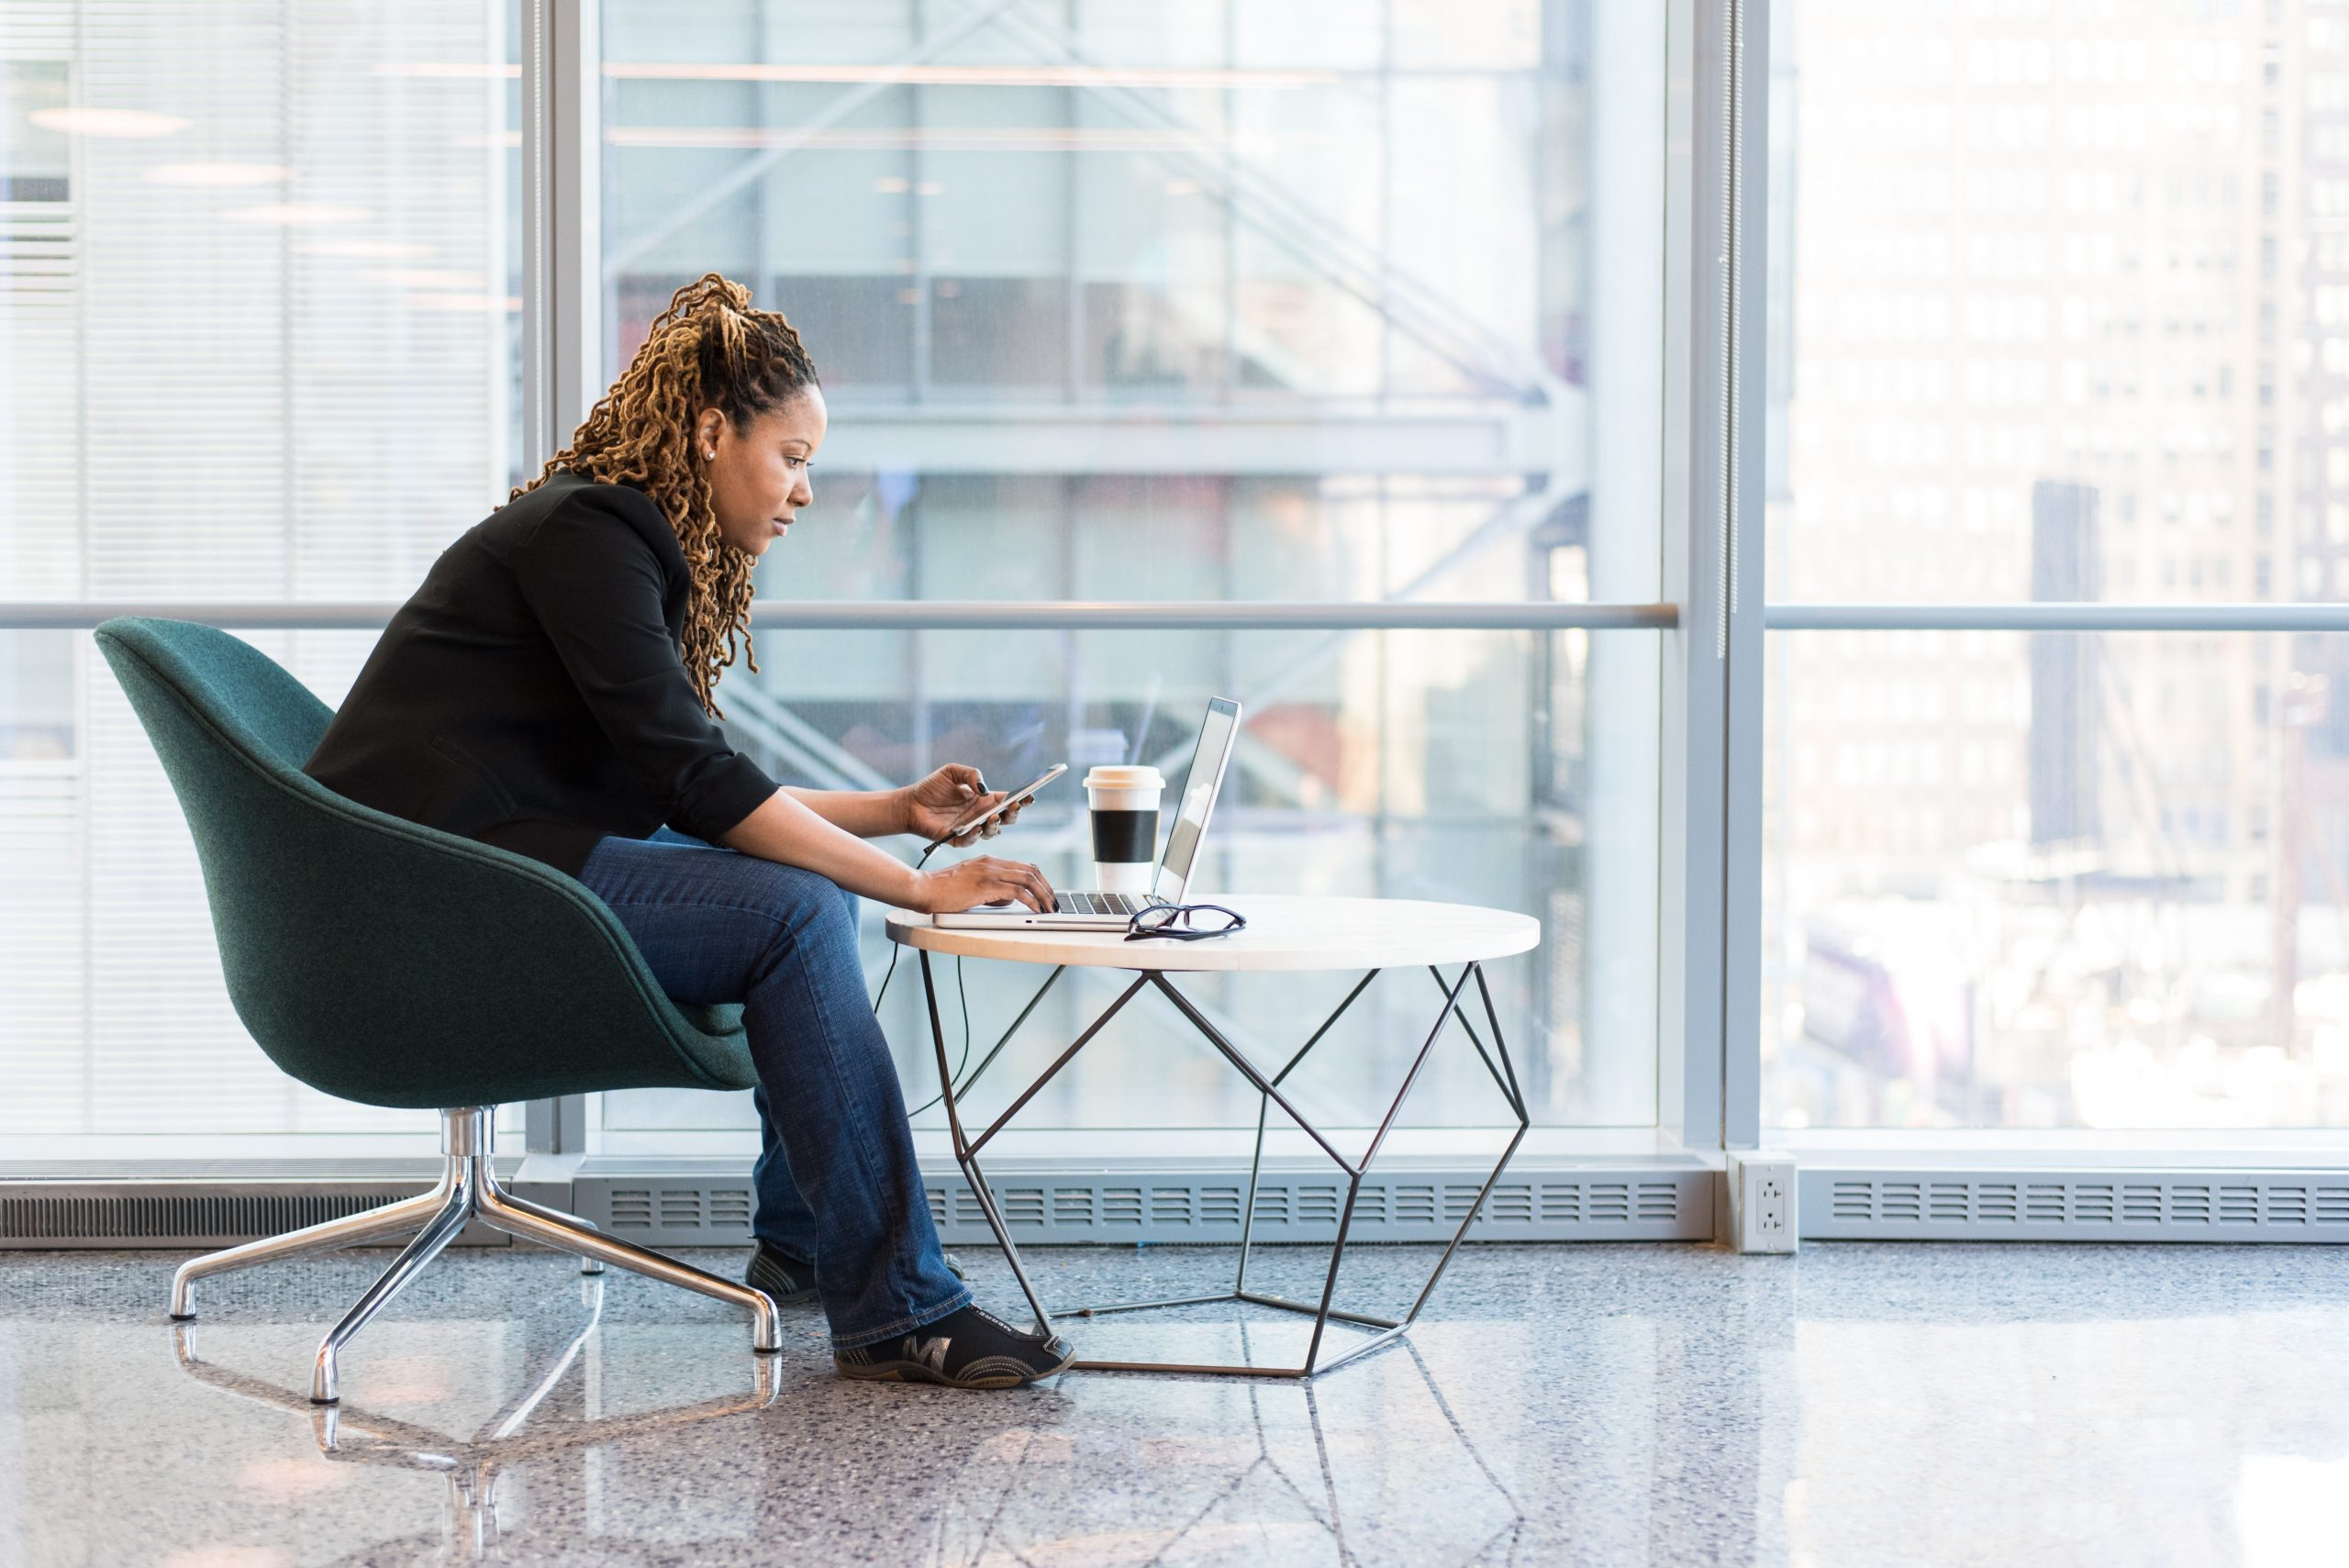 black-woman-corporate-office-working